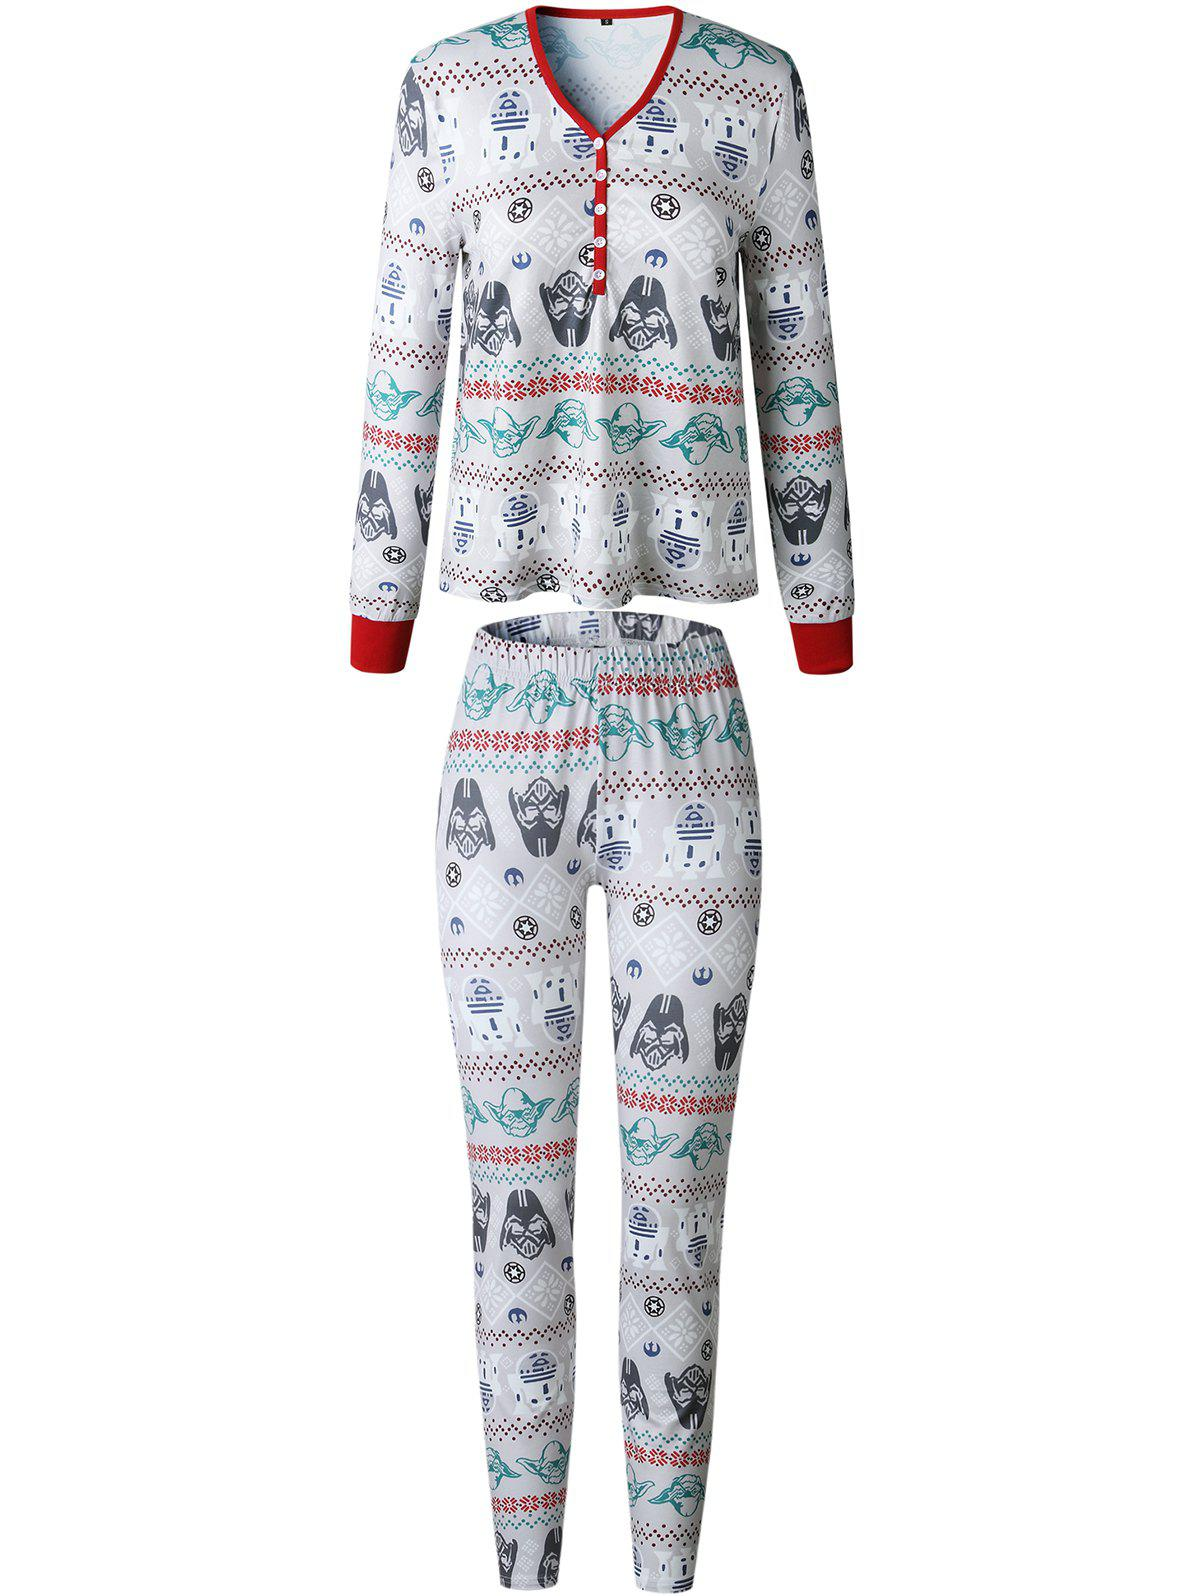 Sale Christmas  Family Pajama Long Sleeves Casual  Print  Sets Parent-Child Home Suit Pyjamas